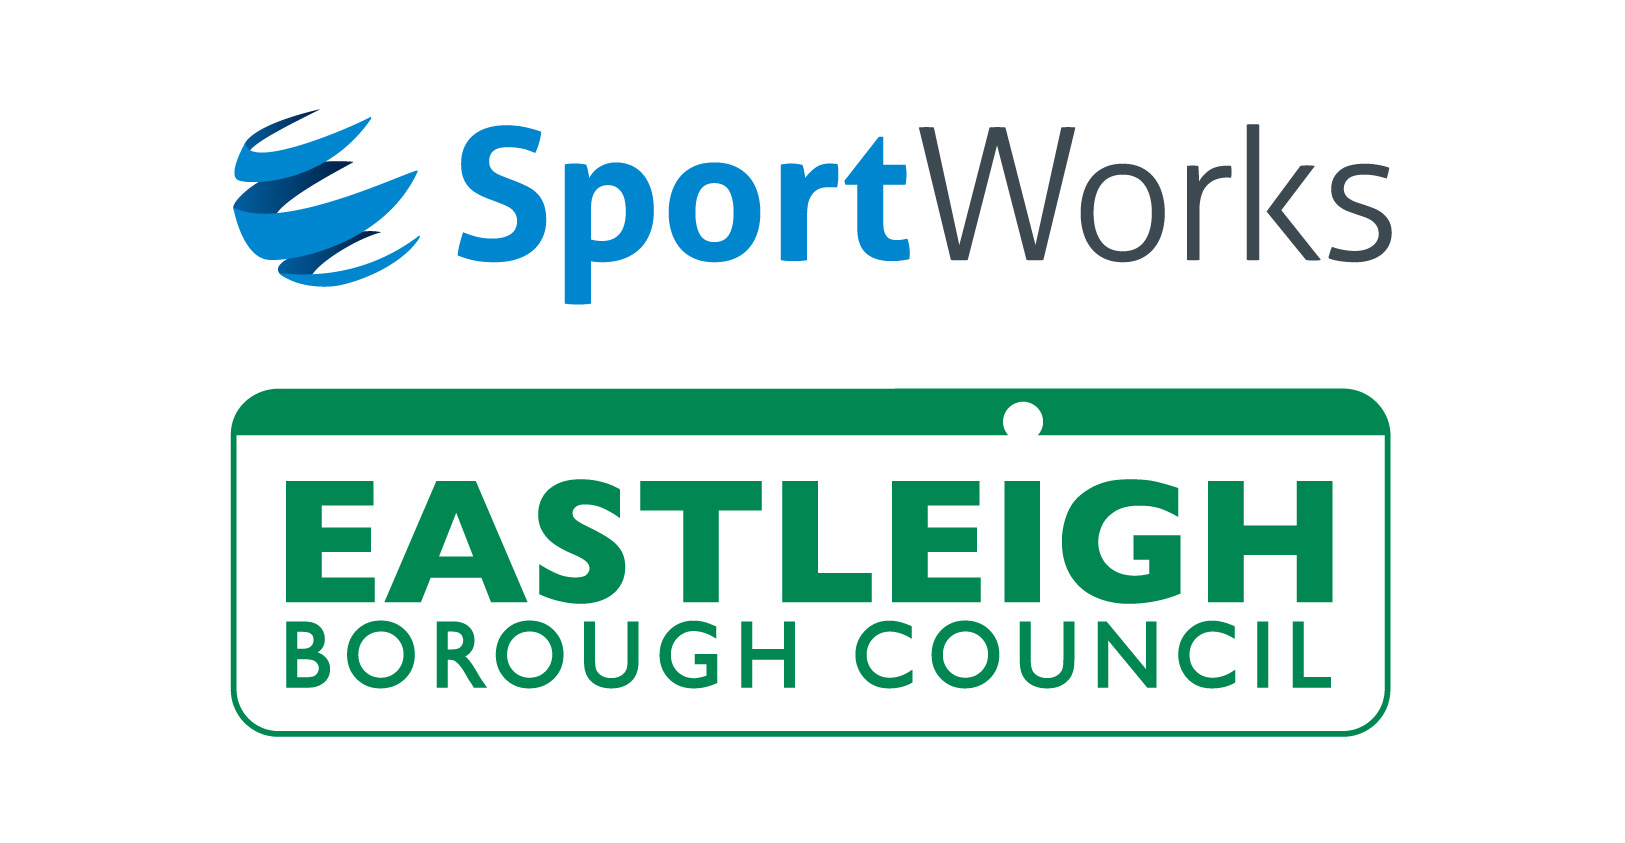 Sports Works - Eastleigh Borough Council logo